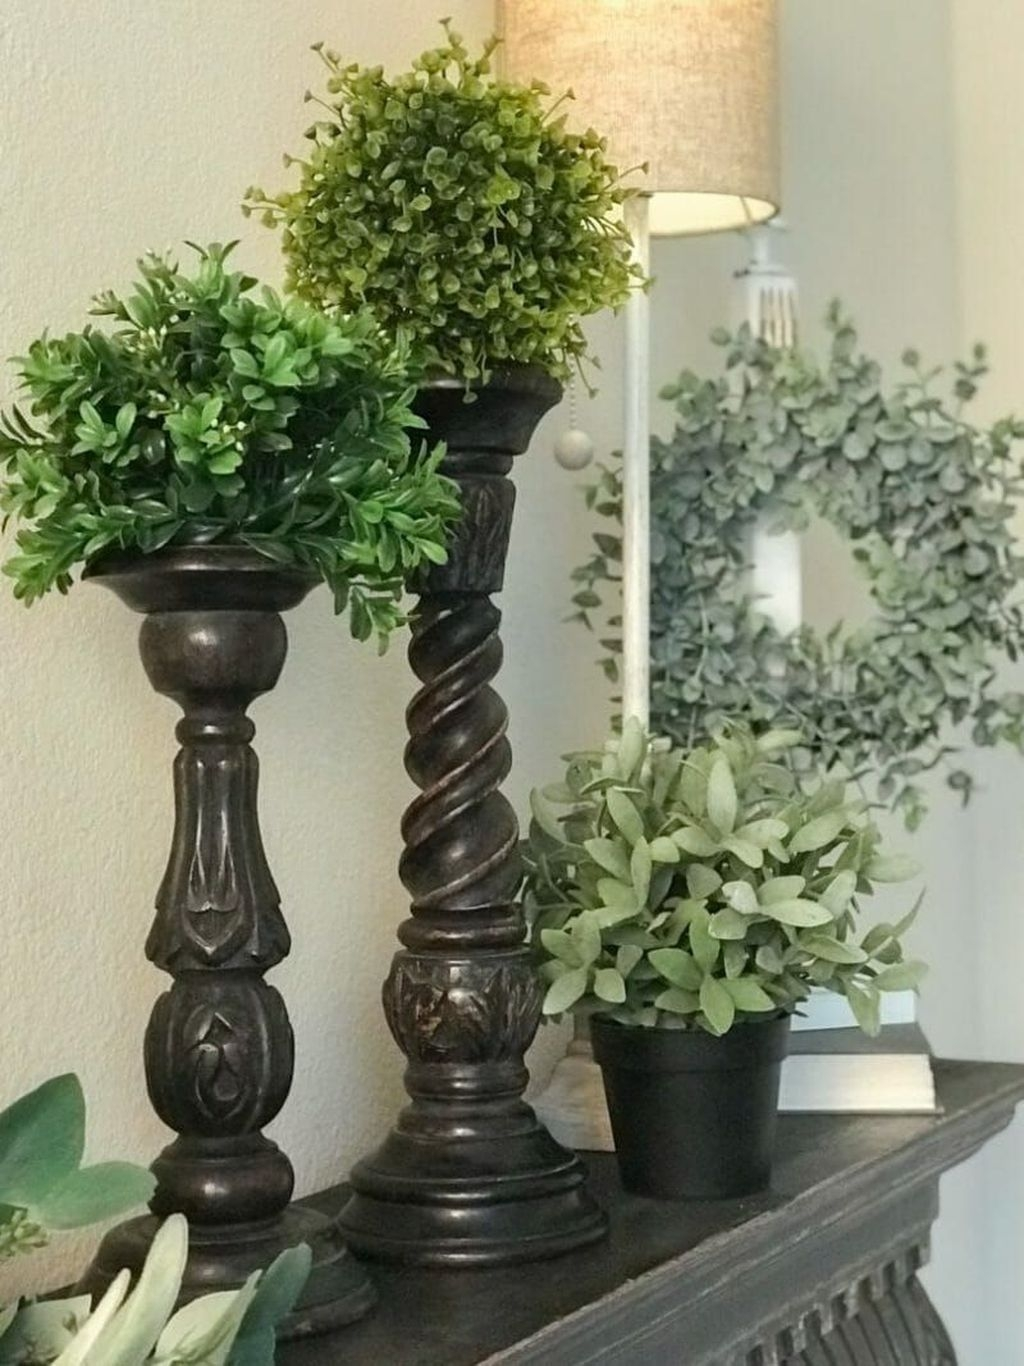 Affordable Arranging Things Ideas In Home For Perfect Order 52